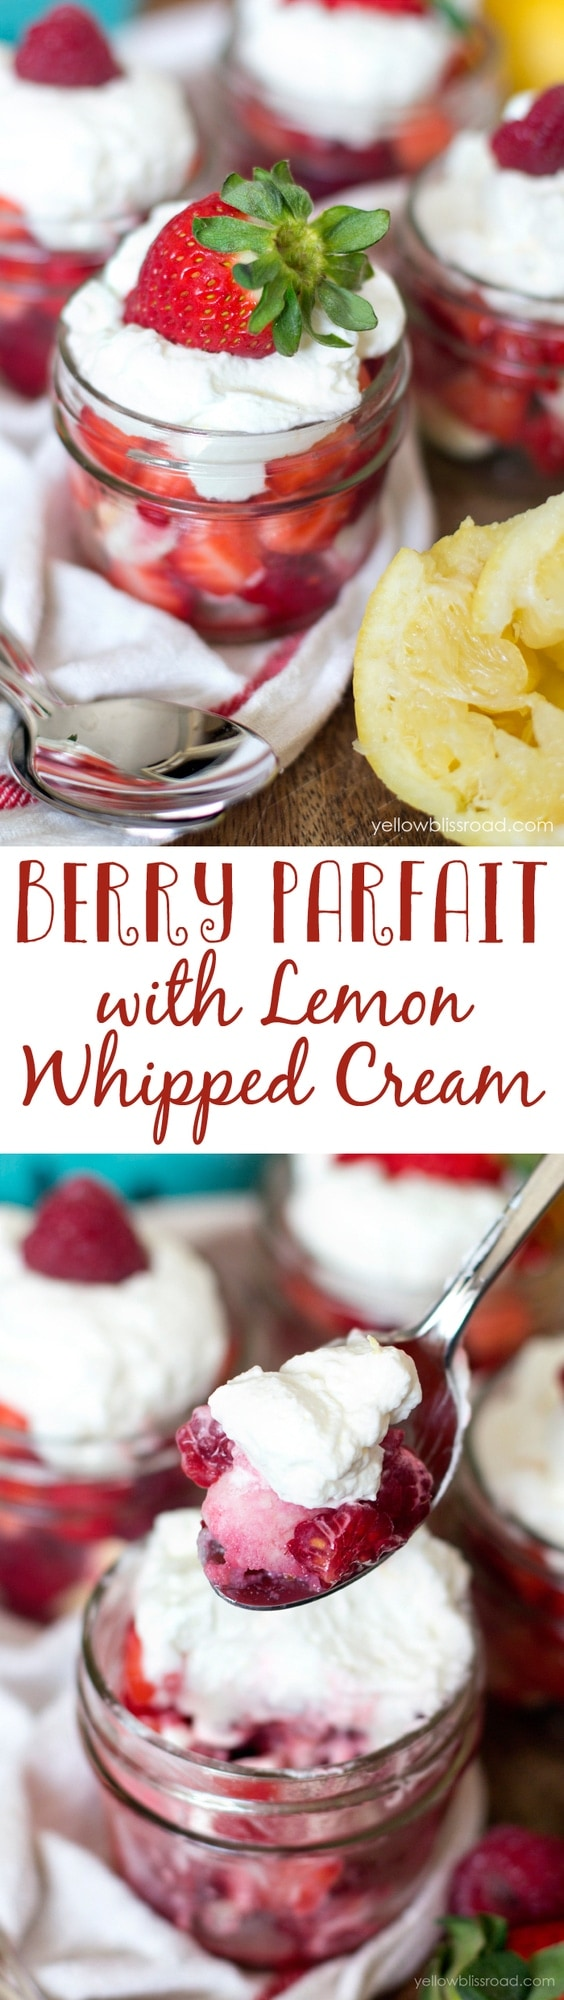 Berry Parfait with Lemon Whipped Cream